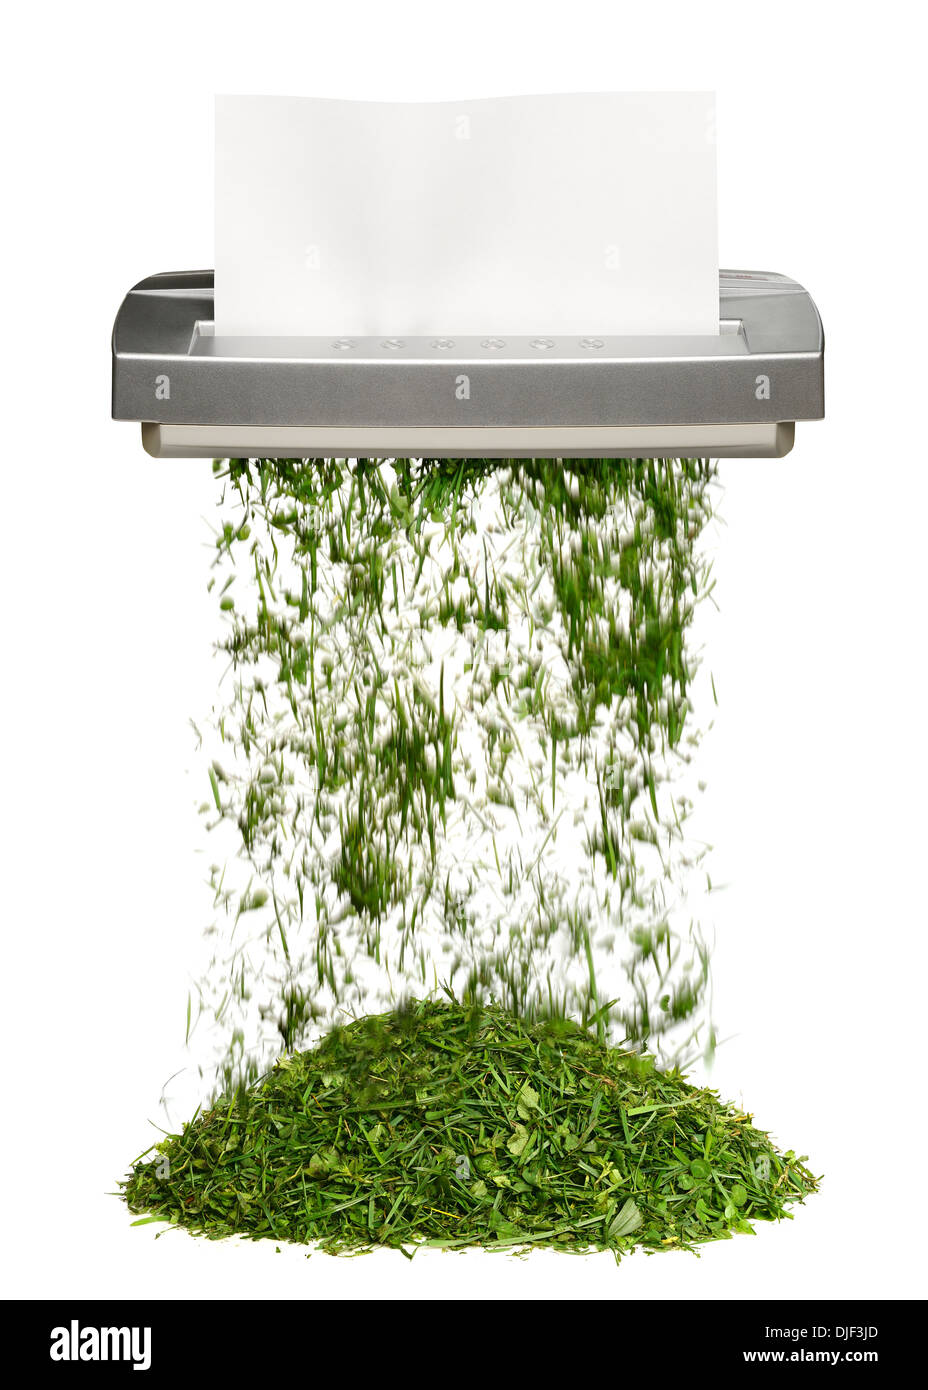 Shredder Turning Paper Into Grass. Green Office Concept. - Stock Image